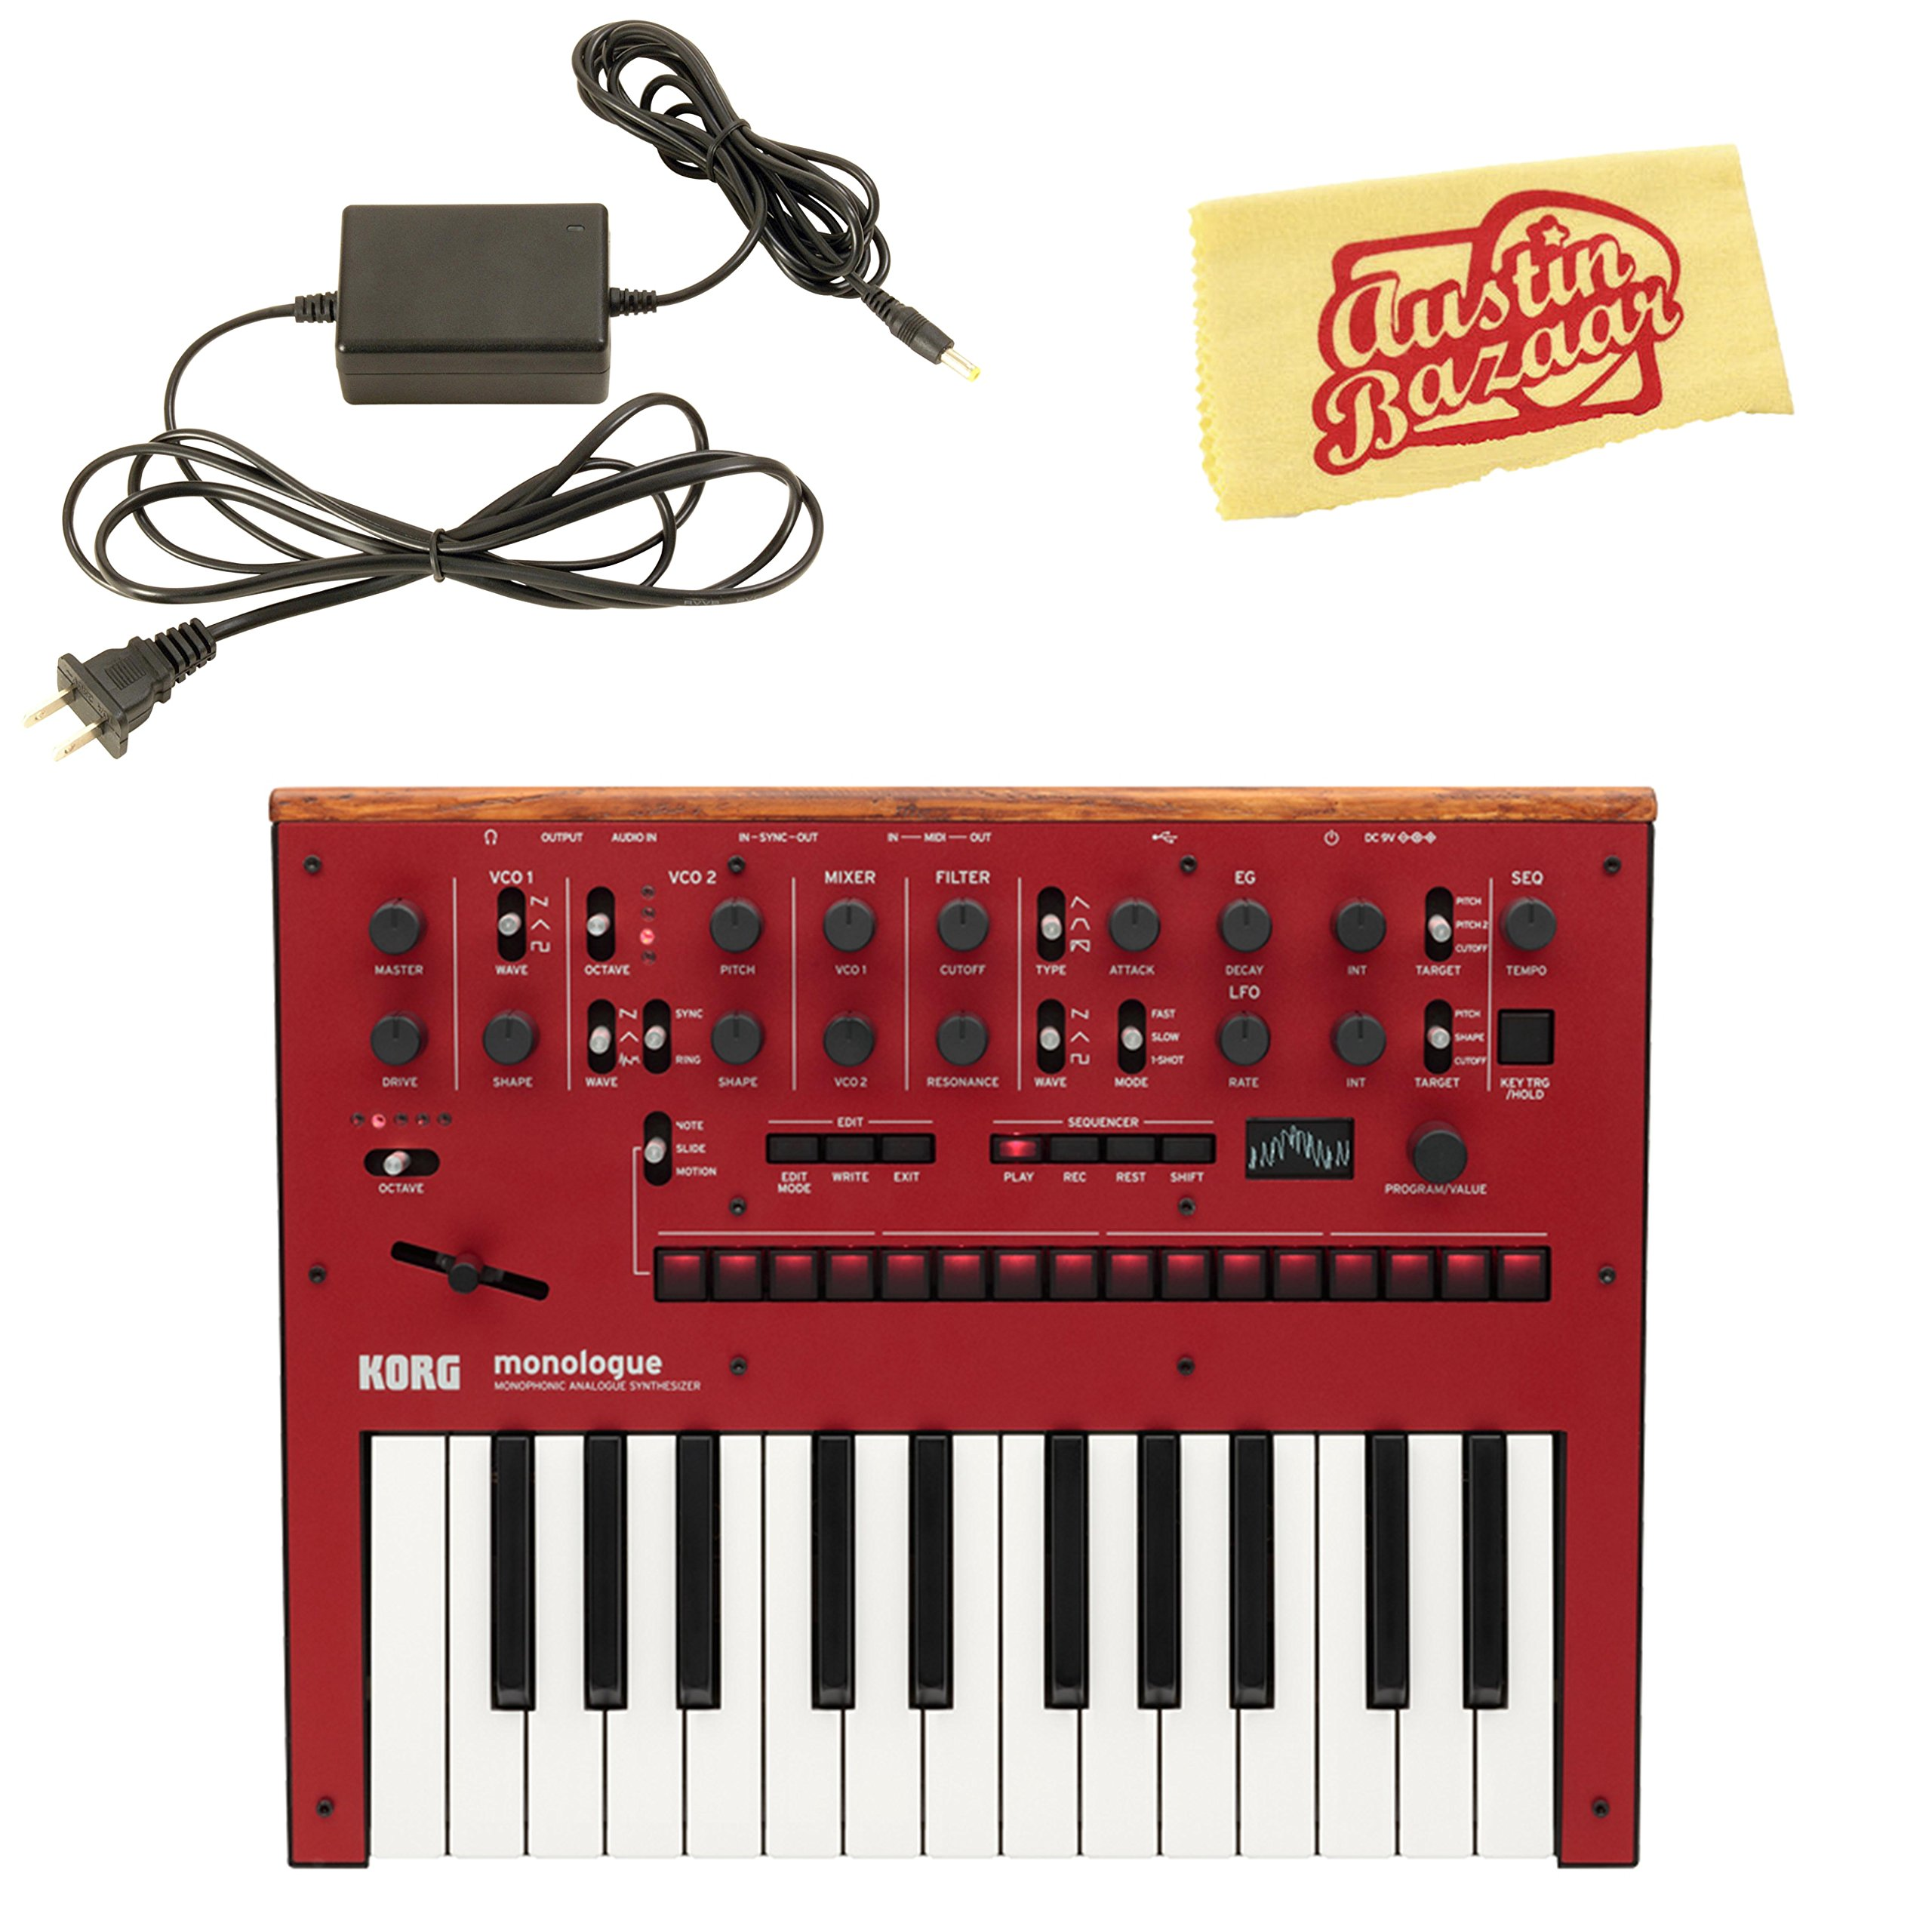 Korg Monologue Monophonic Analog Synthesizer - Red Bundle with Power Supply and Austin Bazaar Polishing Cloth by Korg